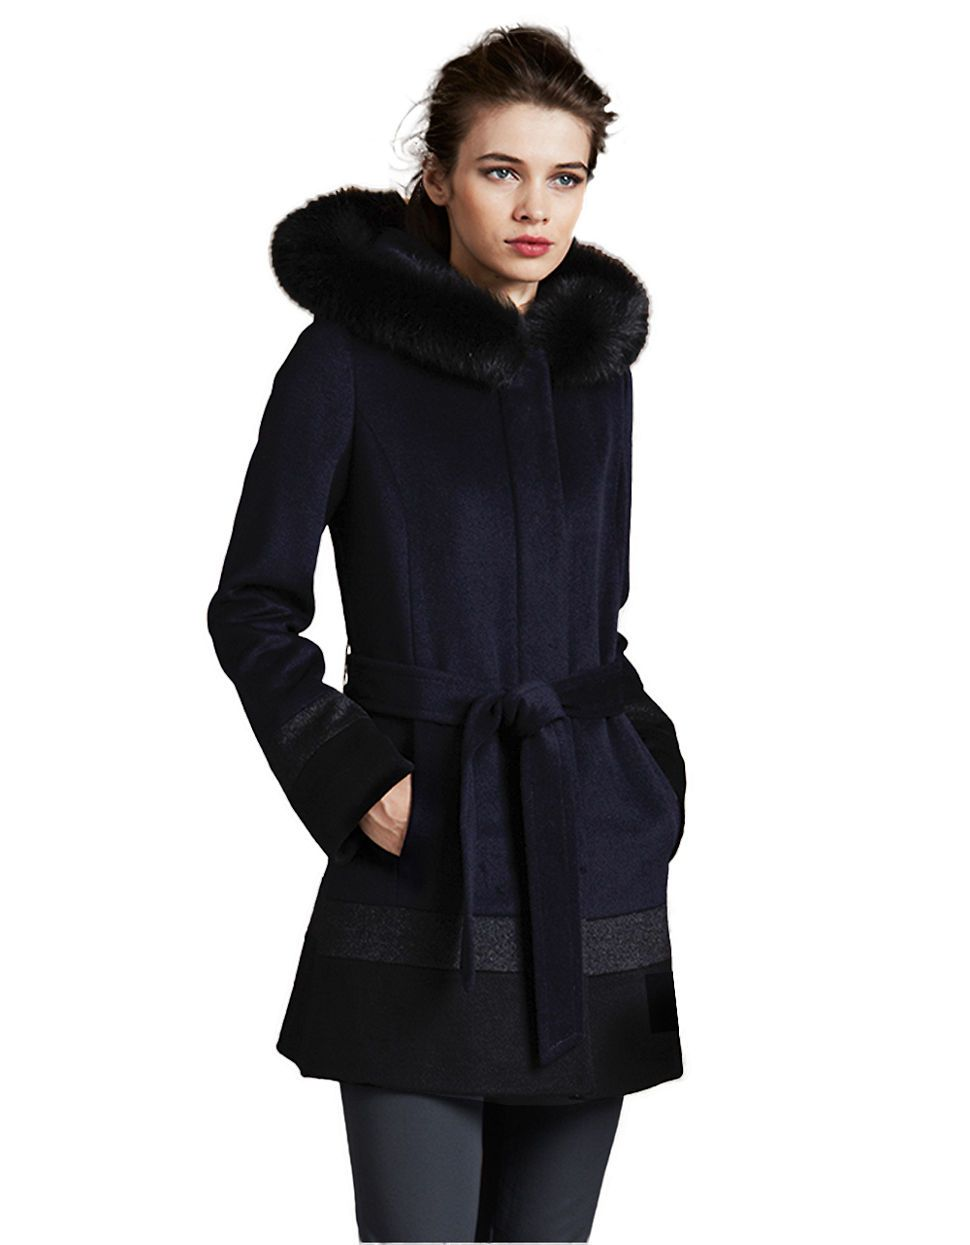 Colorblock Belted Wool Coat   Lord and Taylor